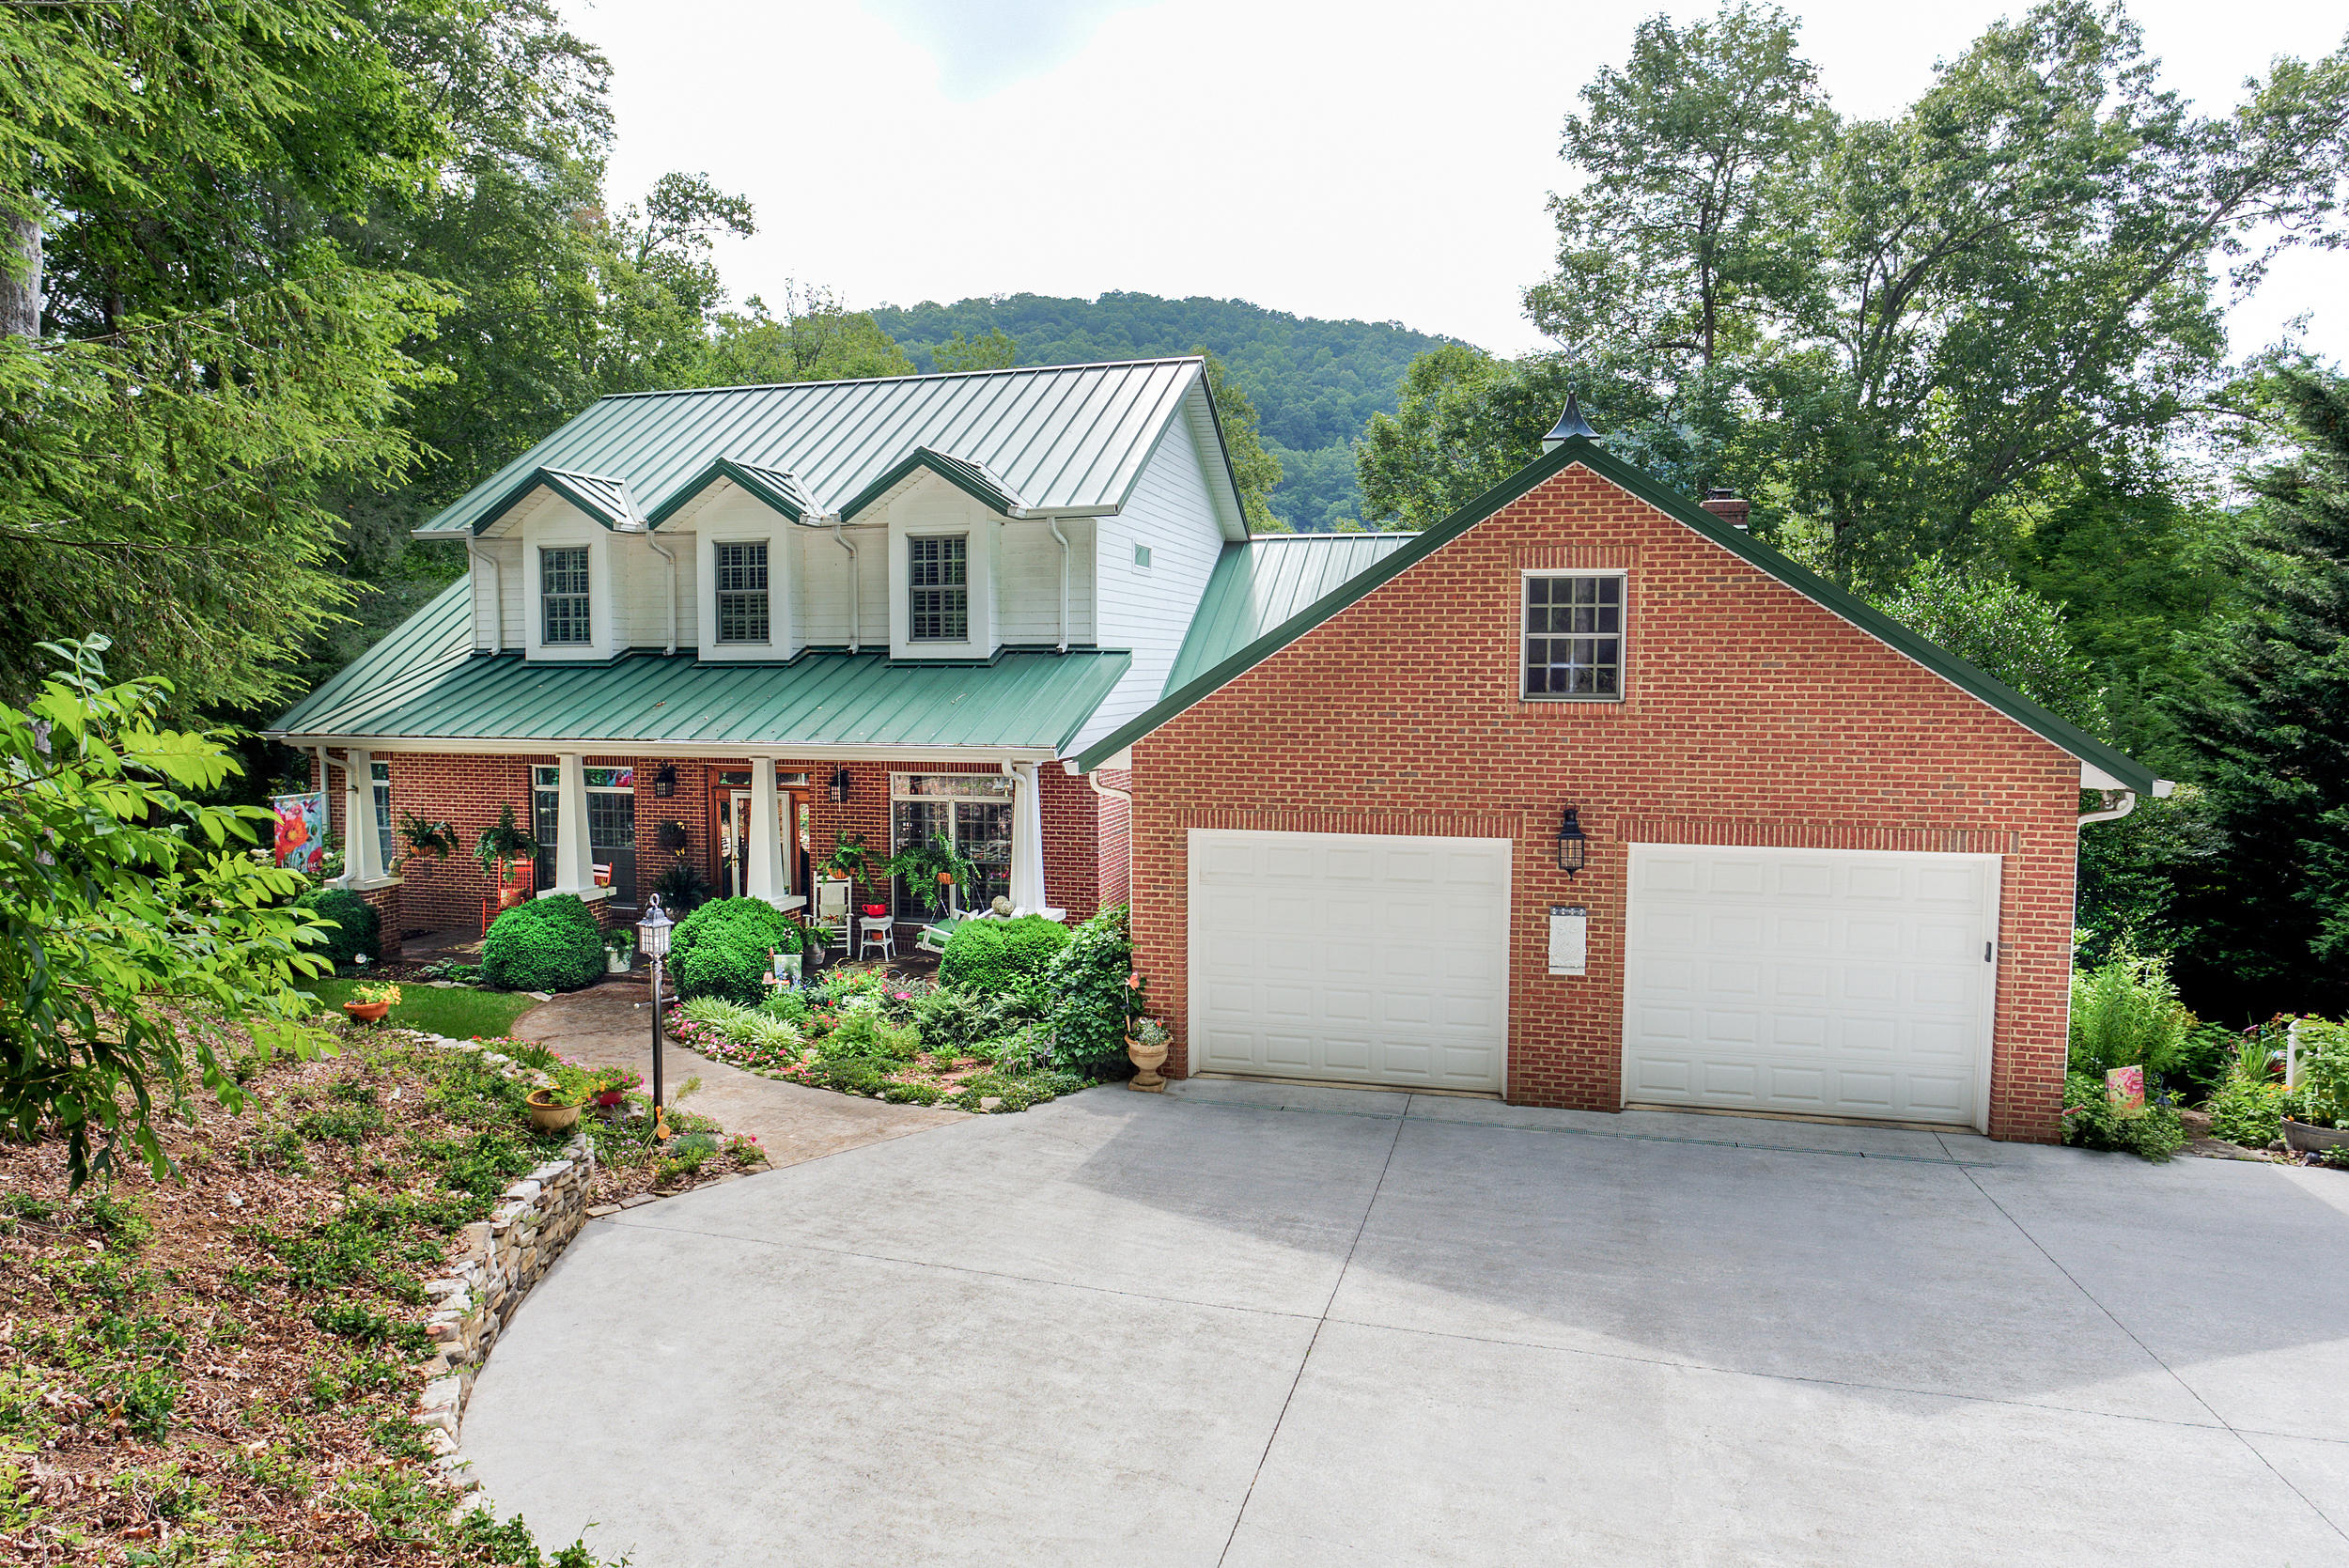 220 Hemlock Bluff Lane: